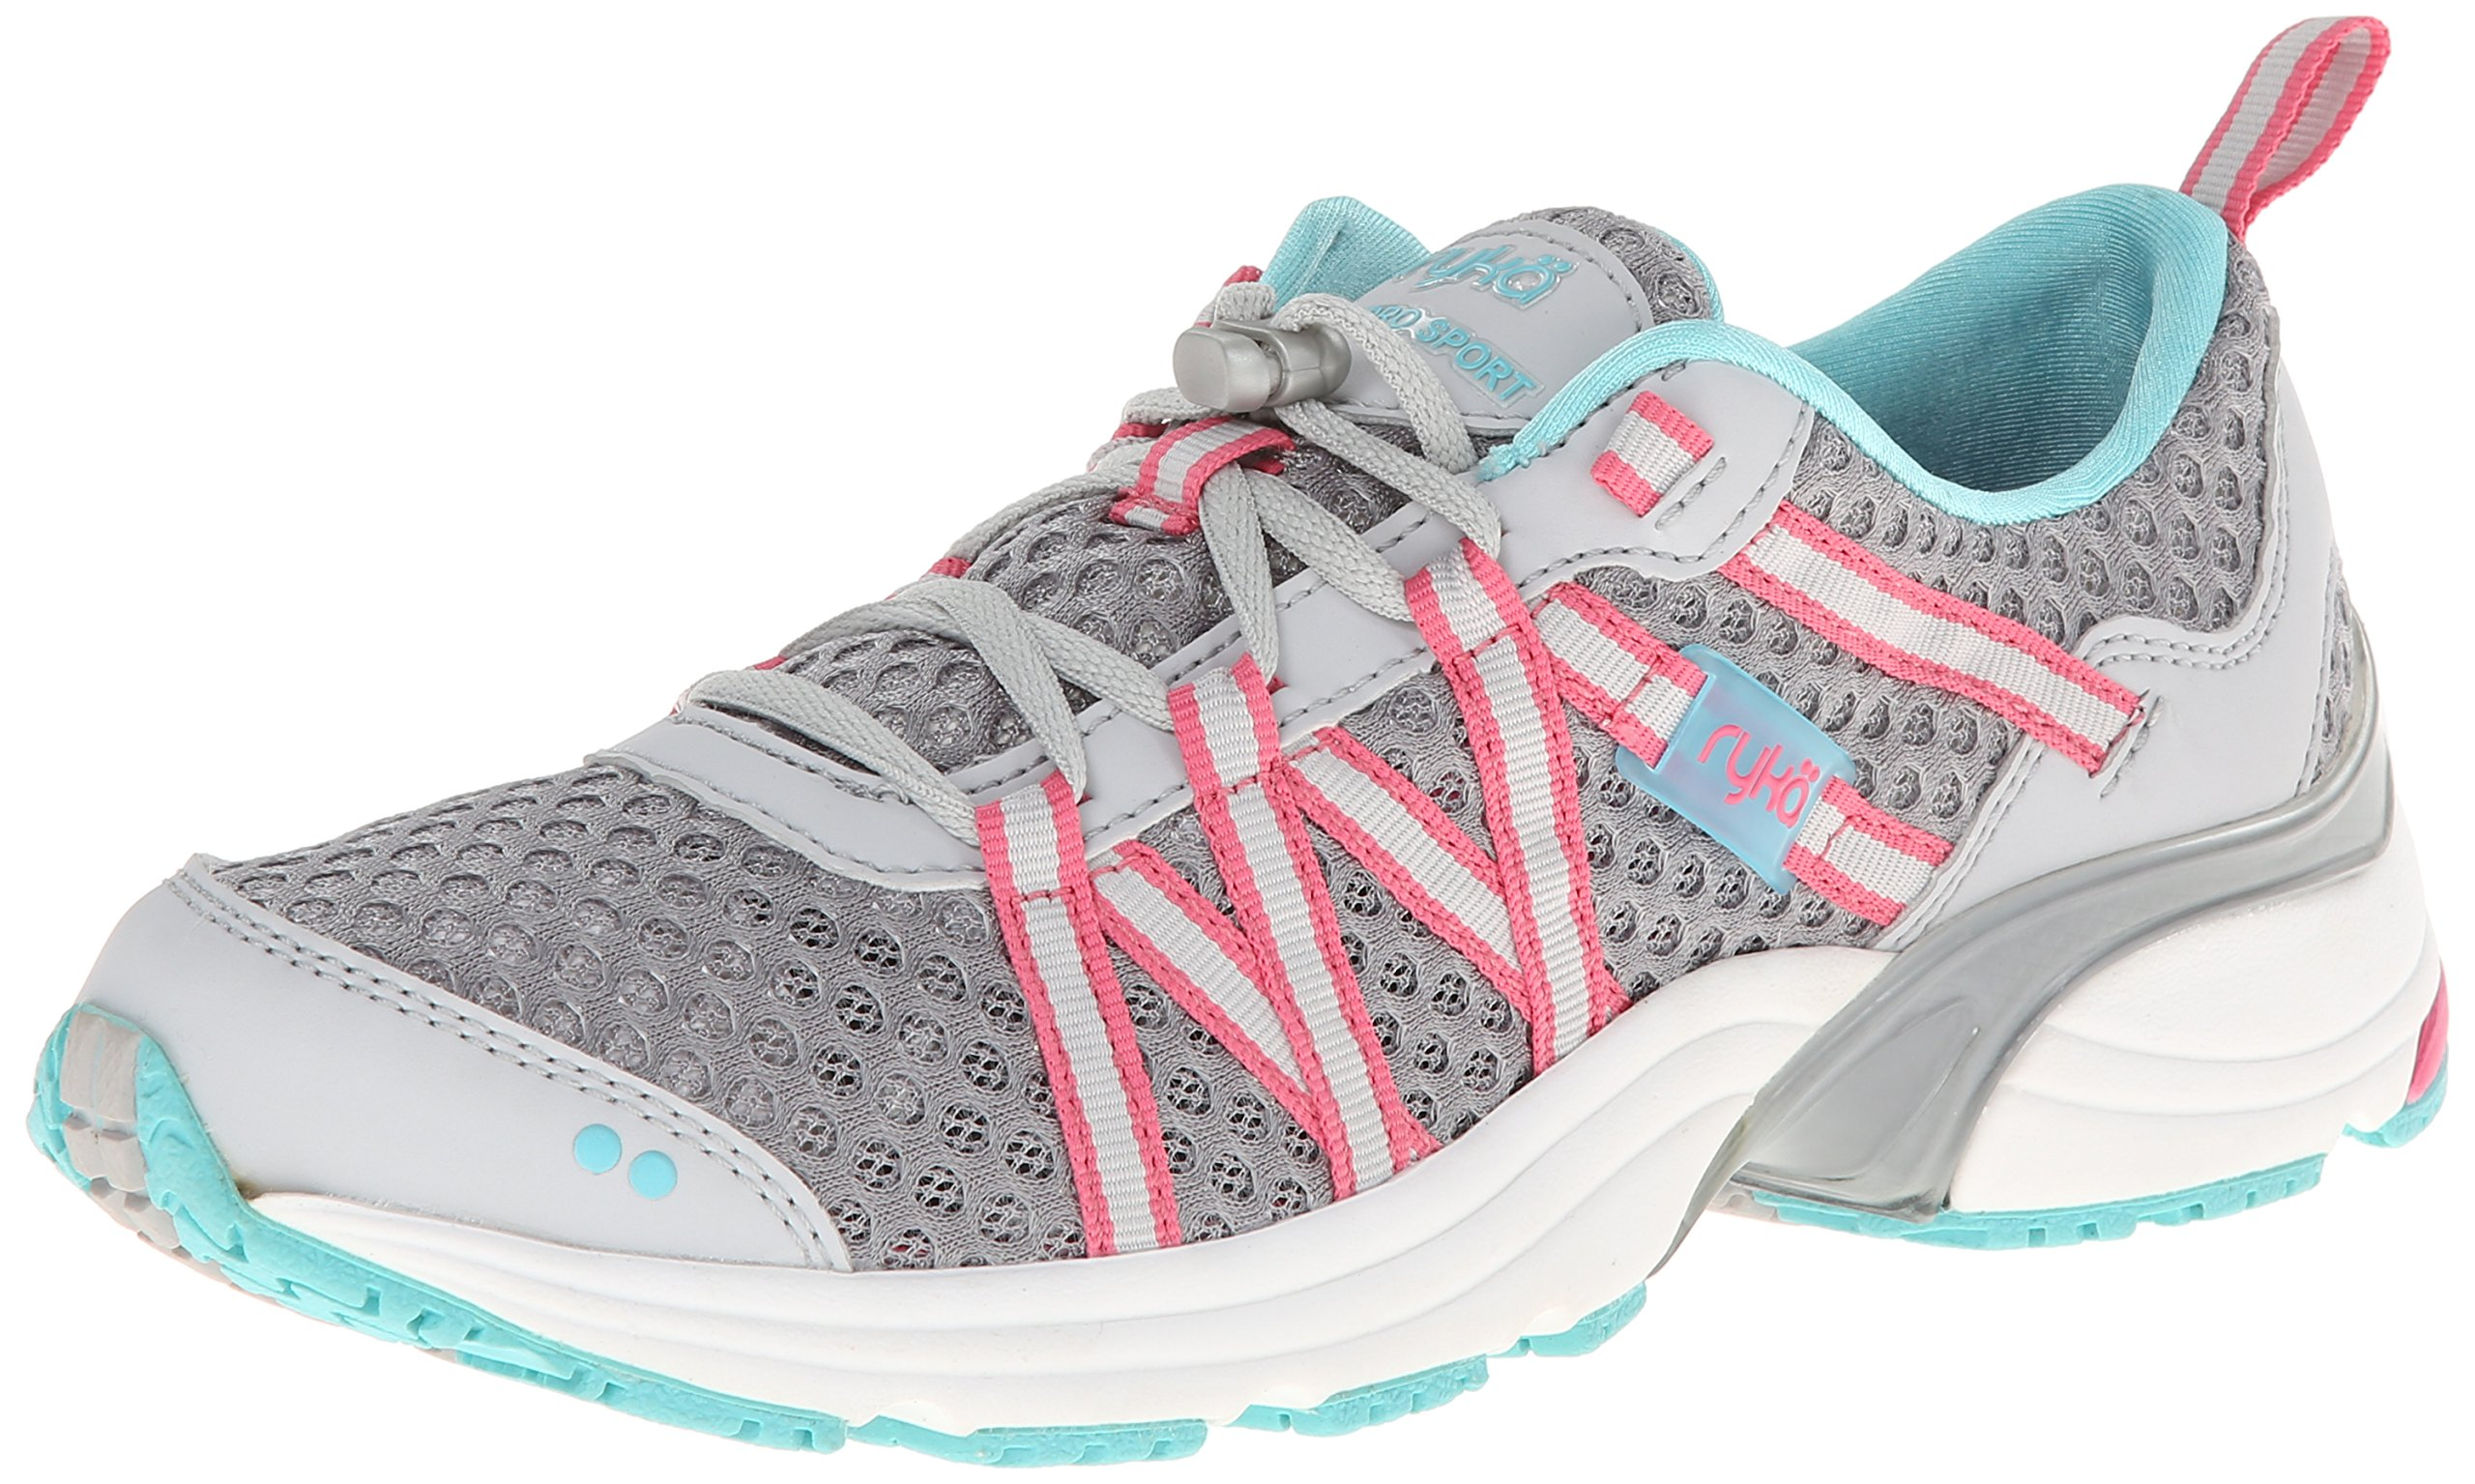 RYKA Women's Hydro Sport Water Shoe Cross Trainer, Silver Cloud/Cool Mist Grey/Winter Blue/Pink, 8 M US by Ryka